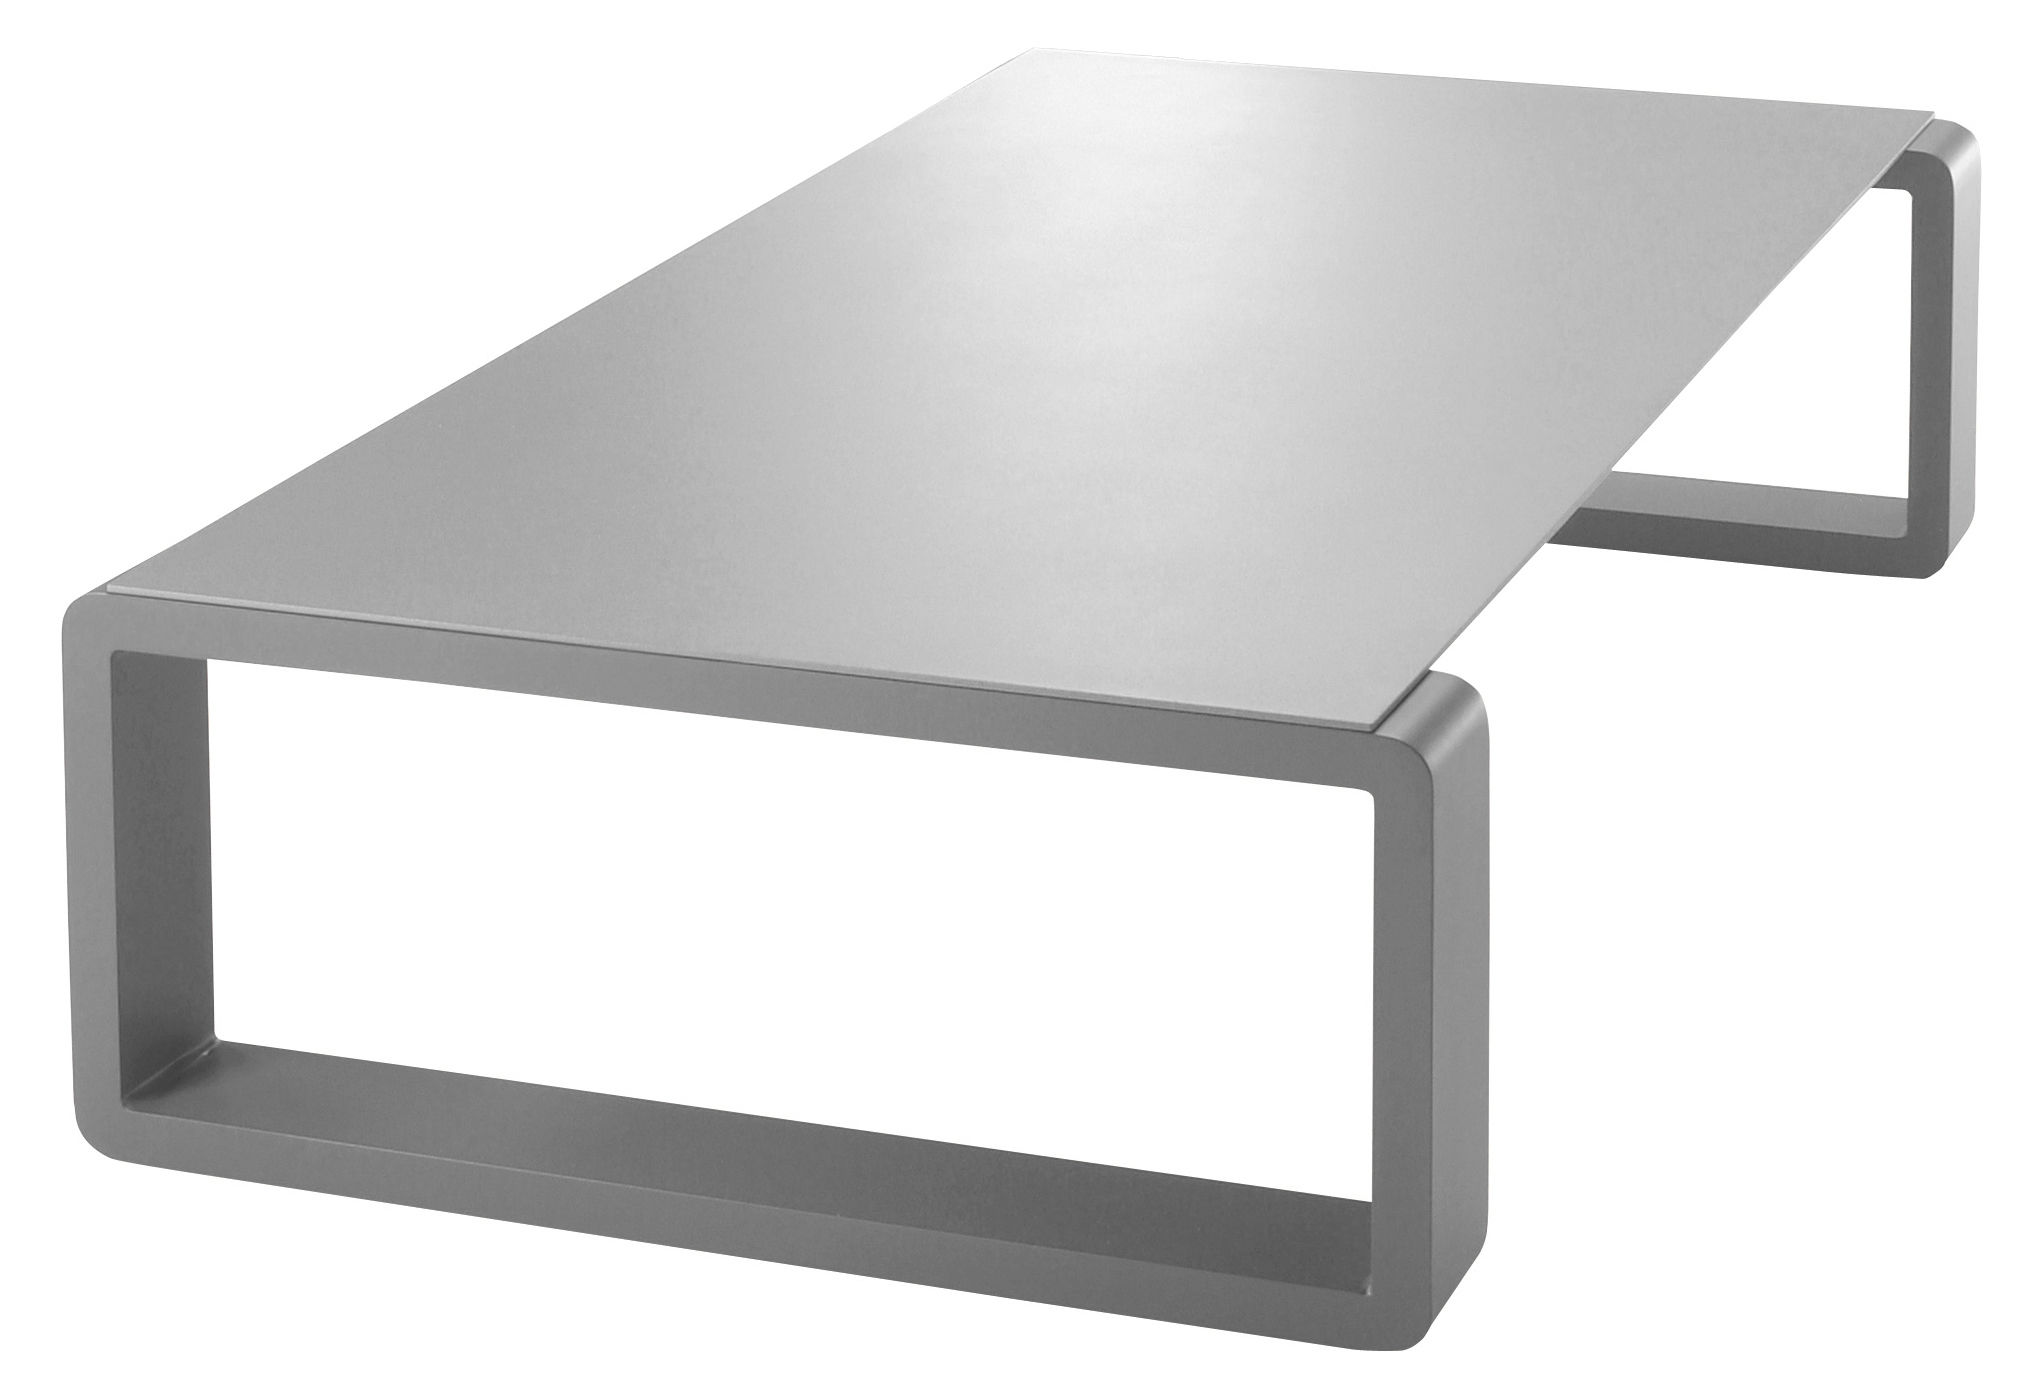 Furniture - Coffee Tables - Kama Coffee table by EGO Paris -  - Lacquered aluminium